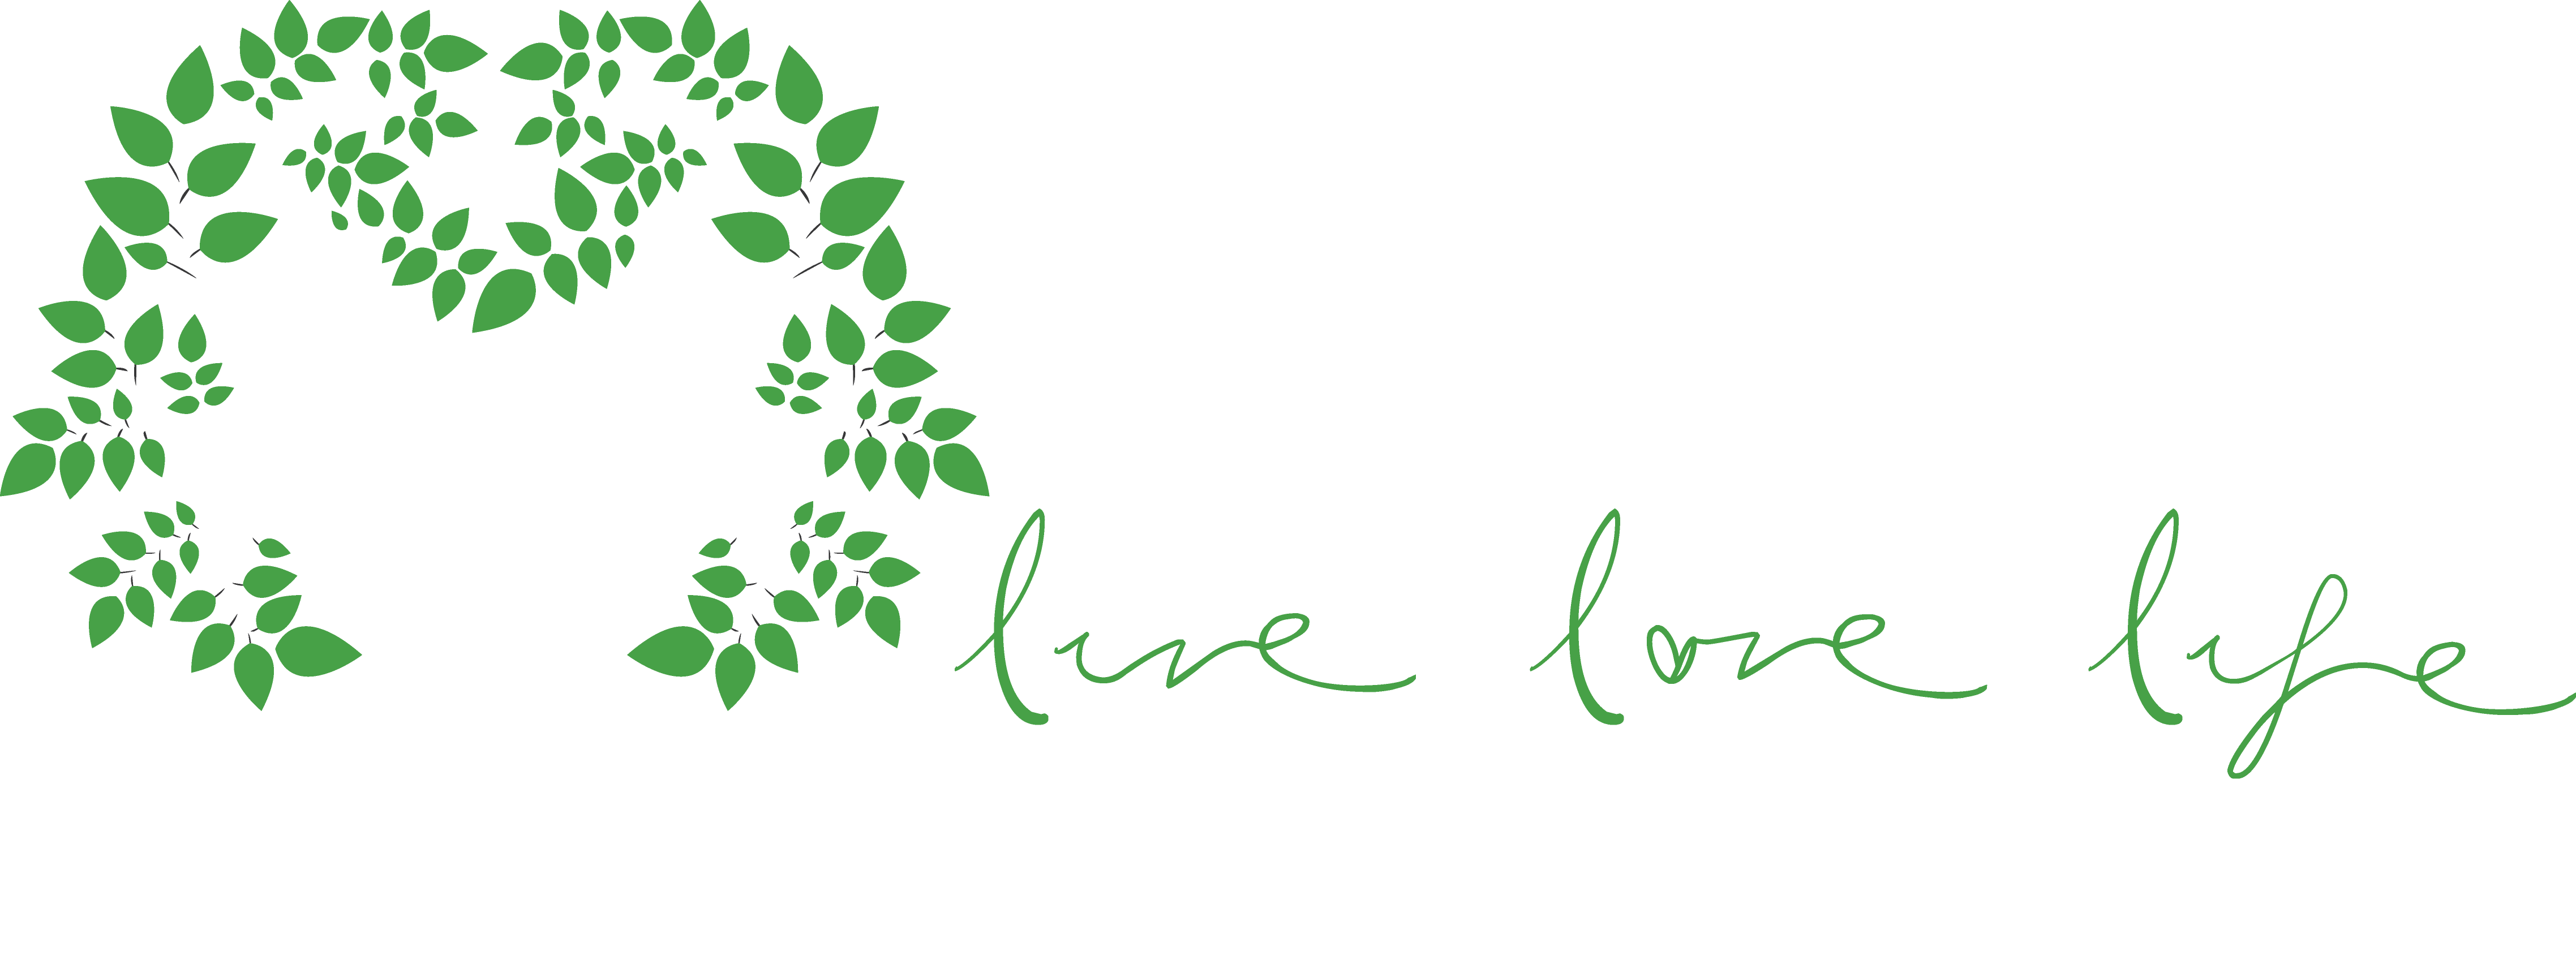 Diana Photography